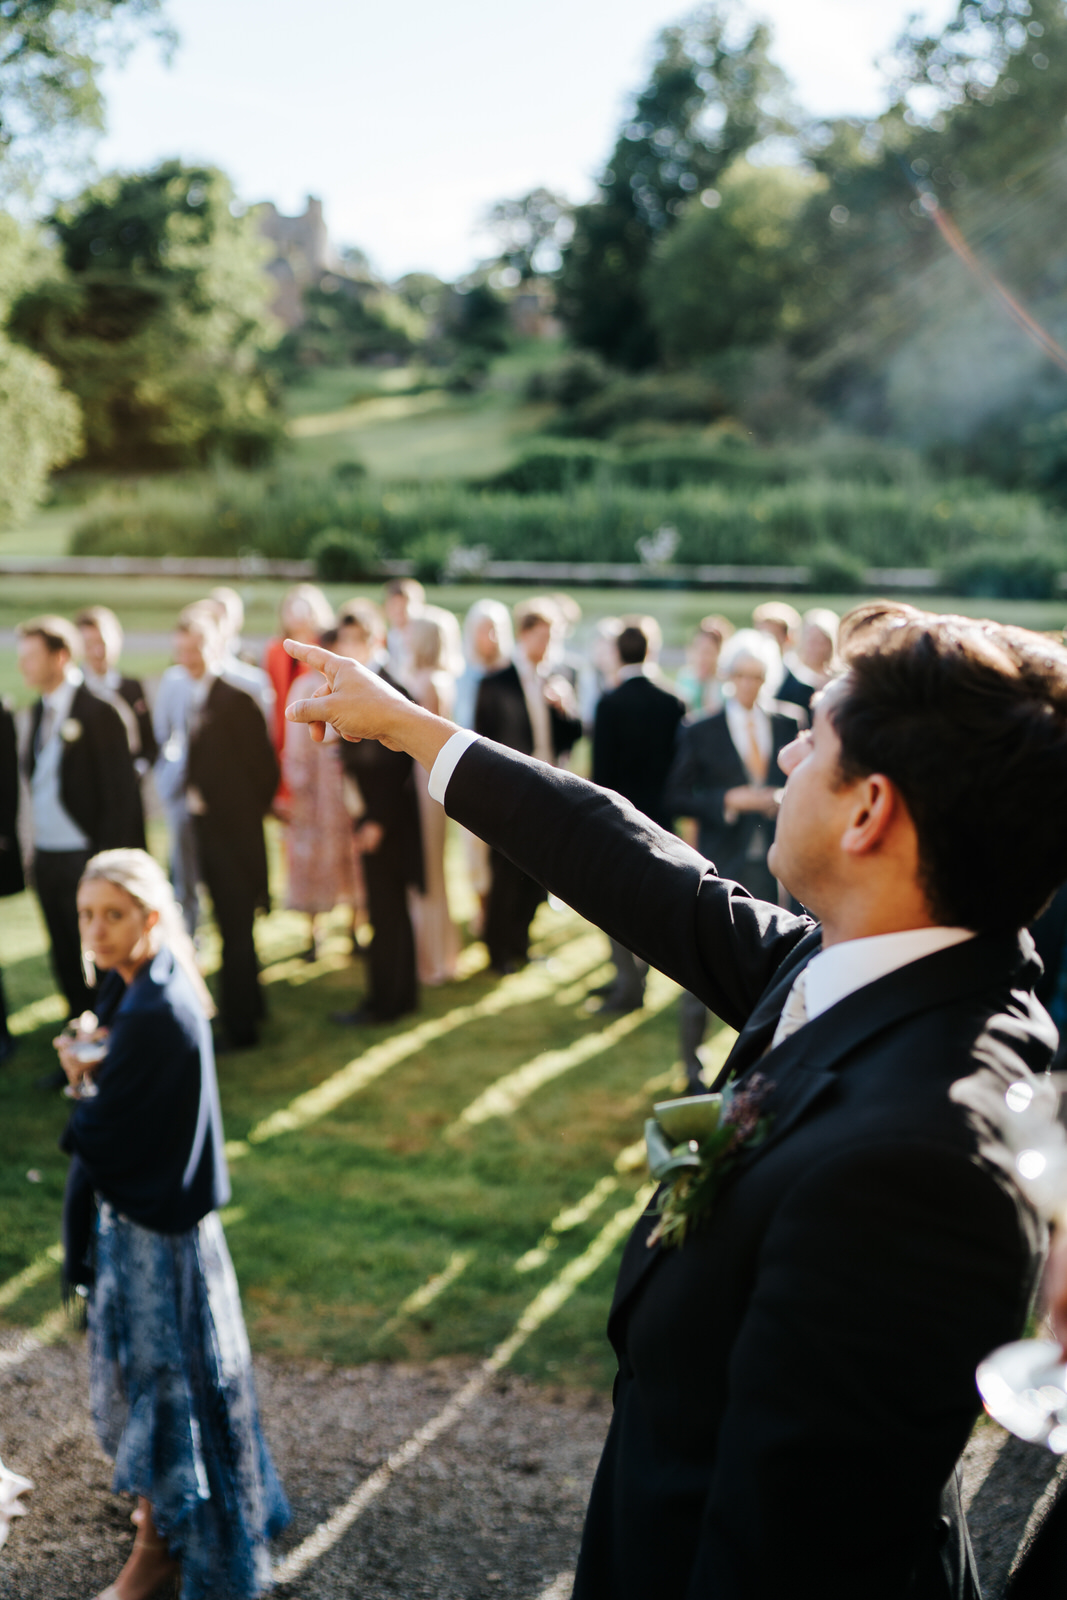 Master of ceremony points towards marquee and instructs guests to make their way towards it